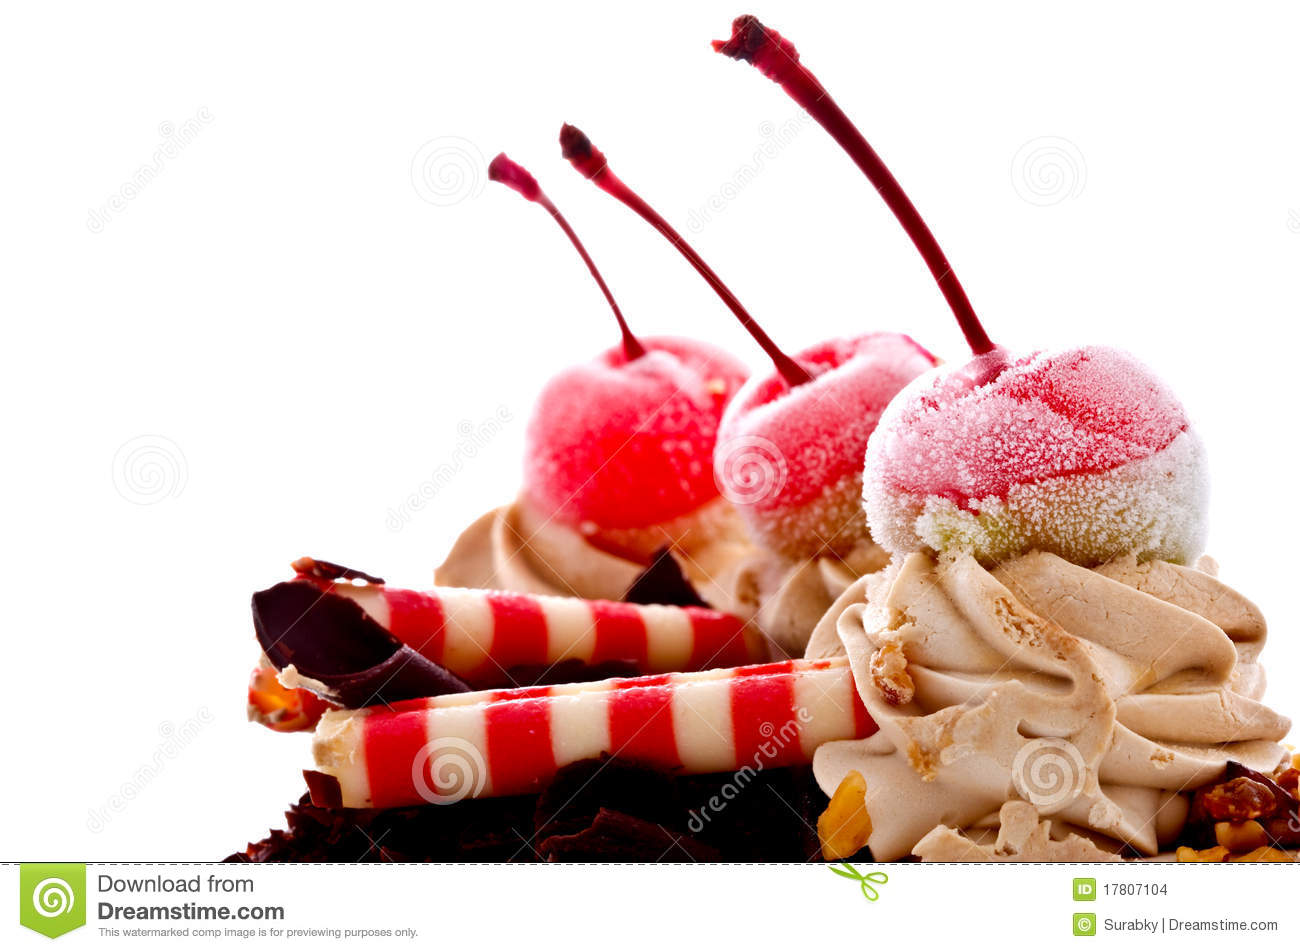 Cake Ice Cream On Top : Cherry On Top Of Ice Cream Cake Stock Images - Image: 17807104